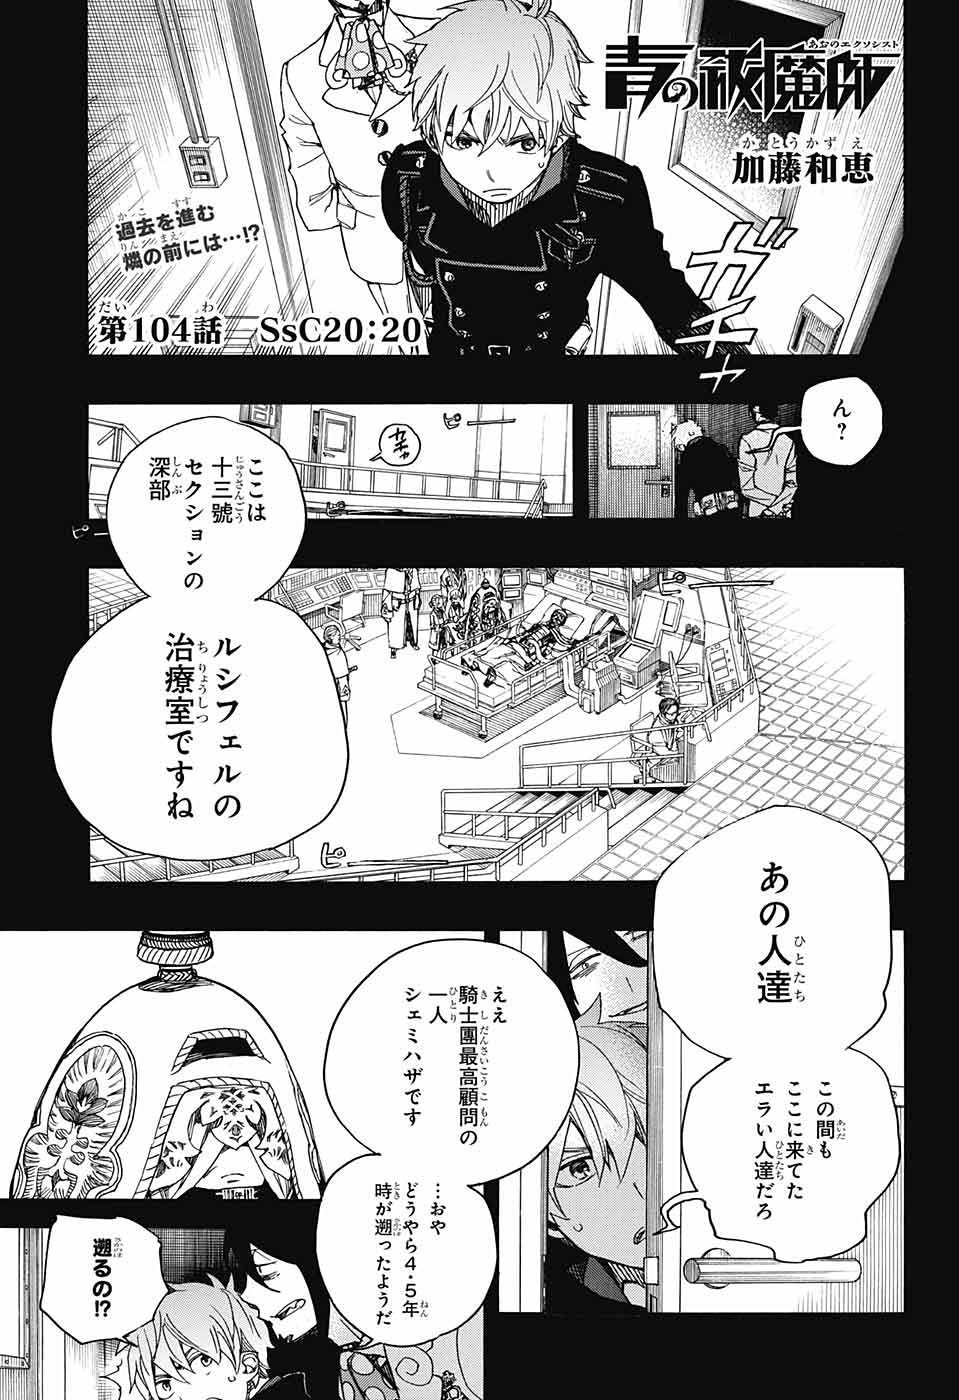 Ao_no_Exorcist Chapter 104 Page 1